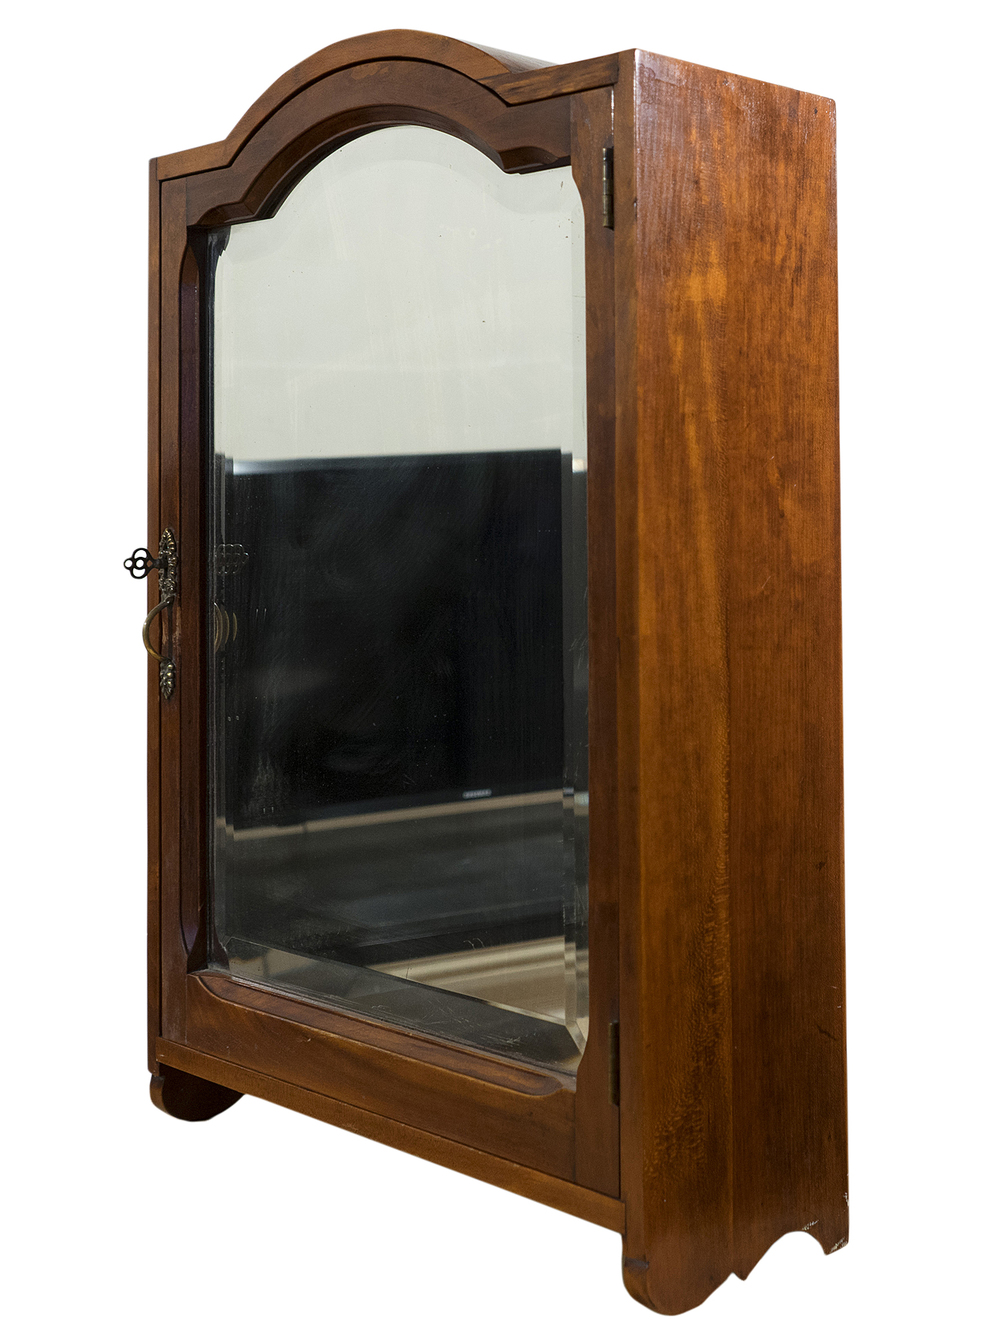 Antique Medicine Cabinet with Beveled Mirror